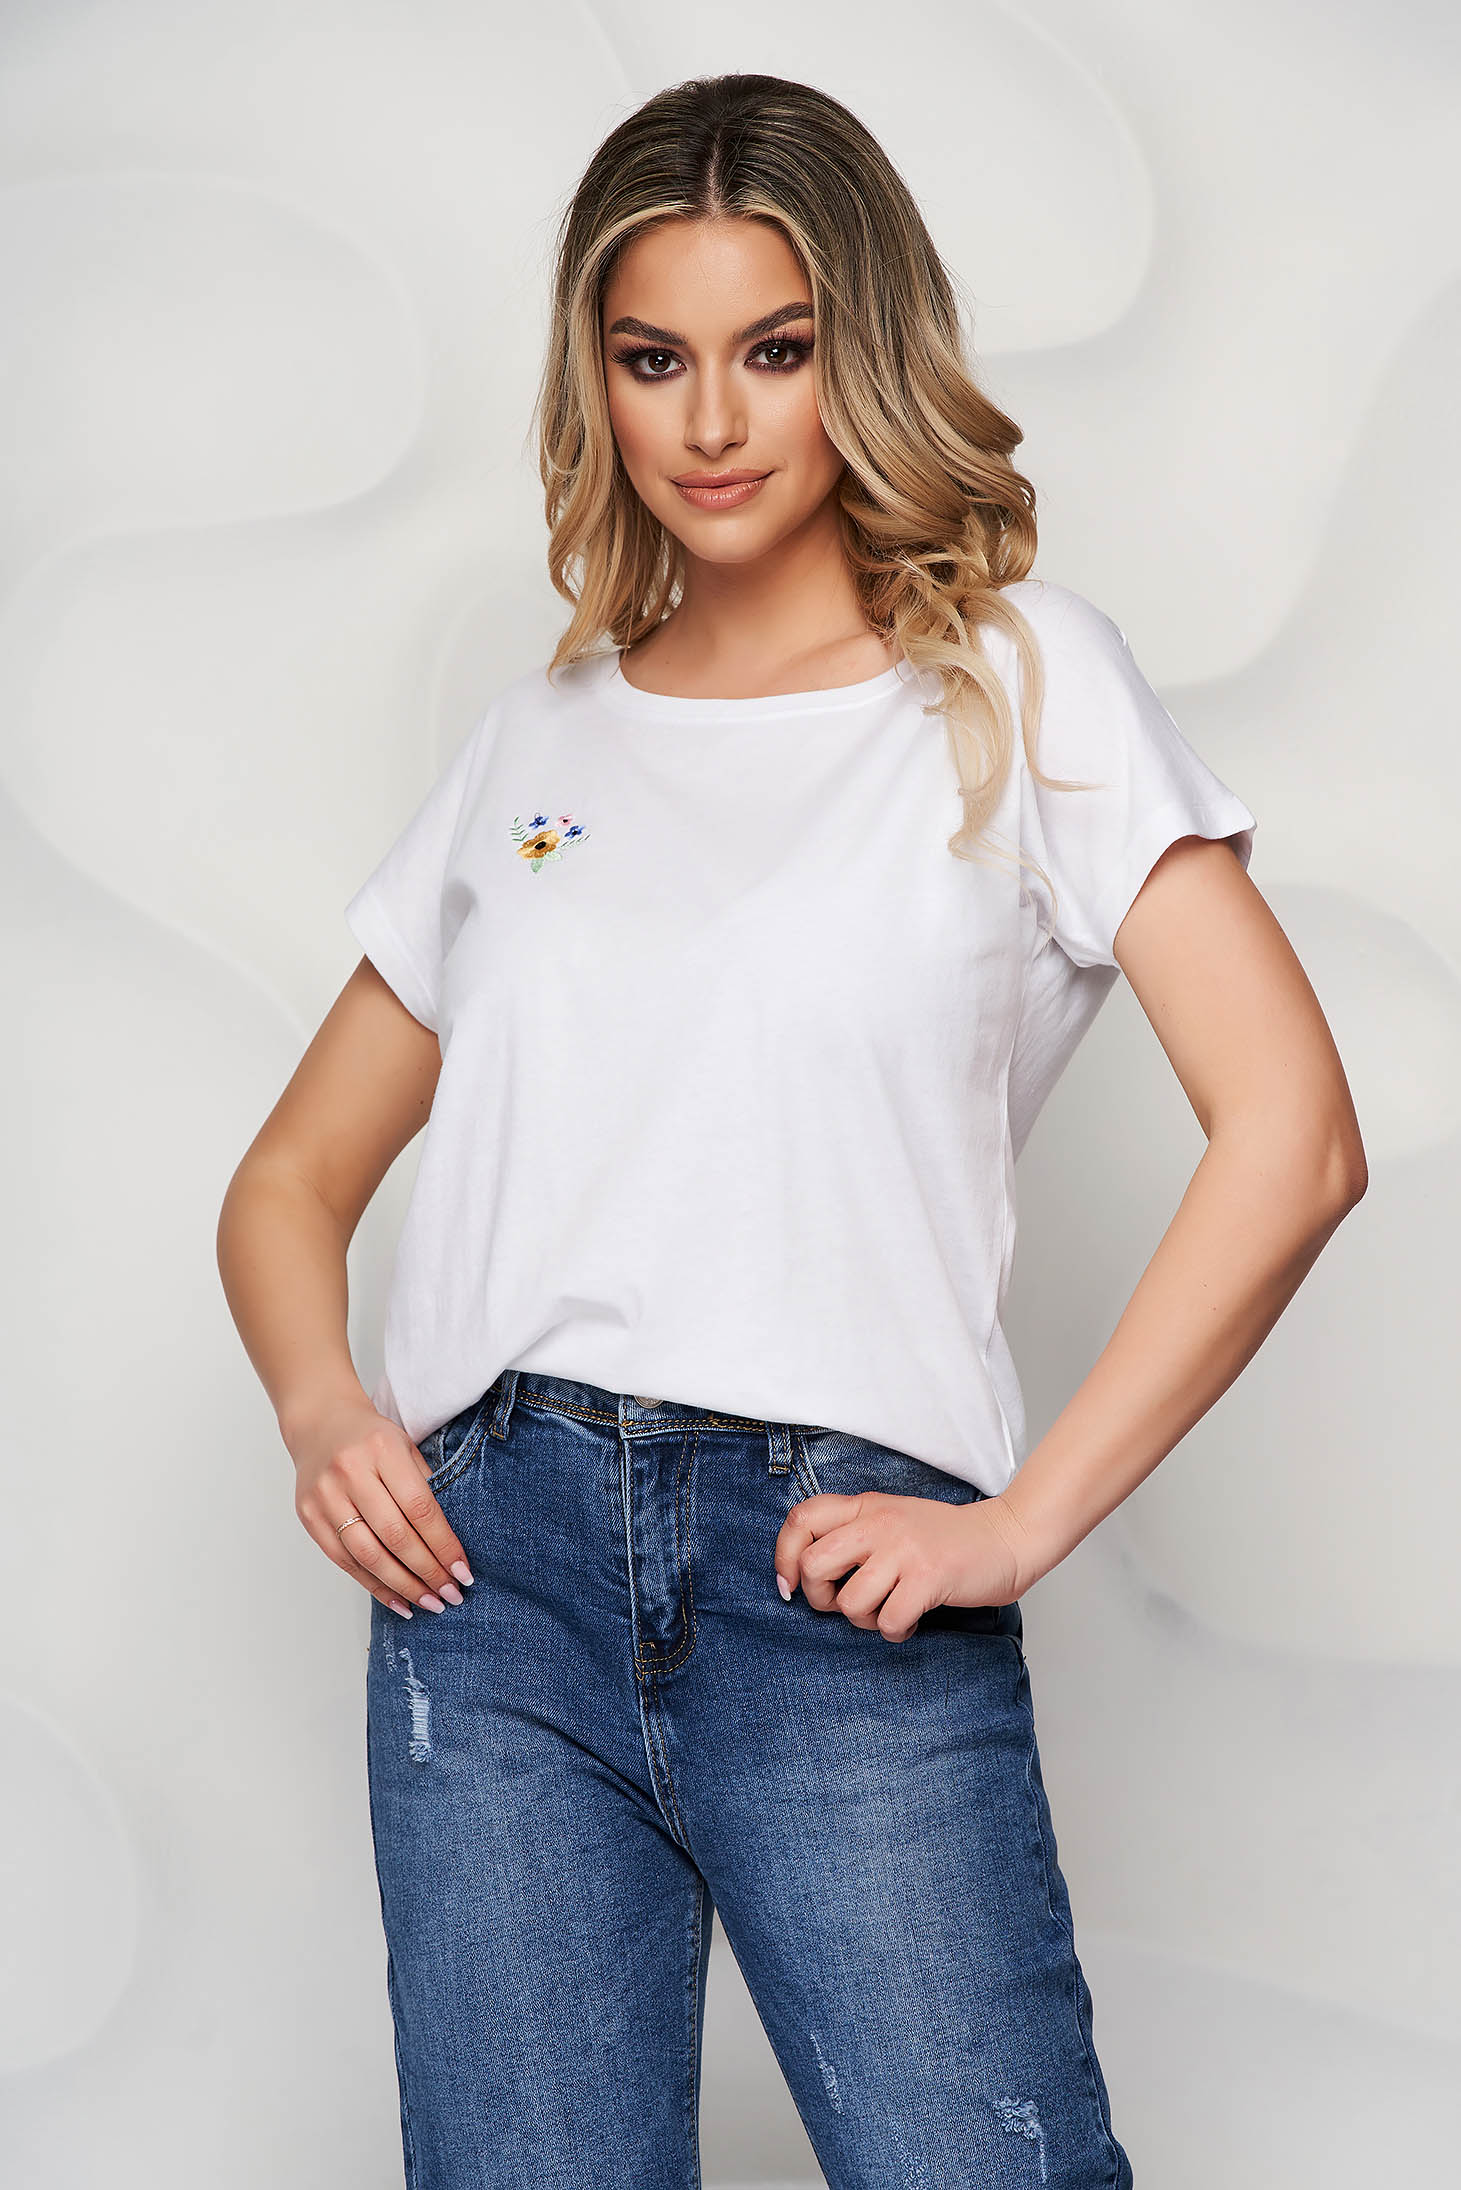 StarShinerS white top shirt slightly elastic cotton loose fit